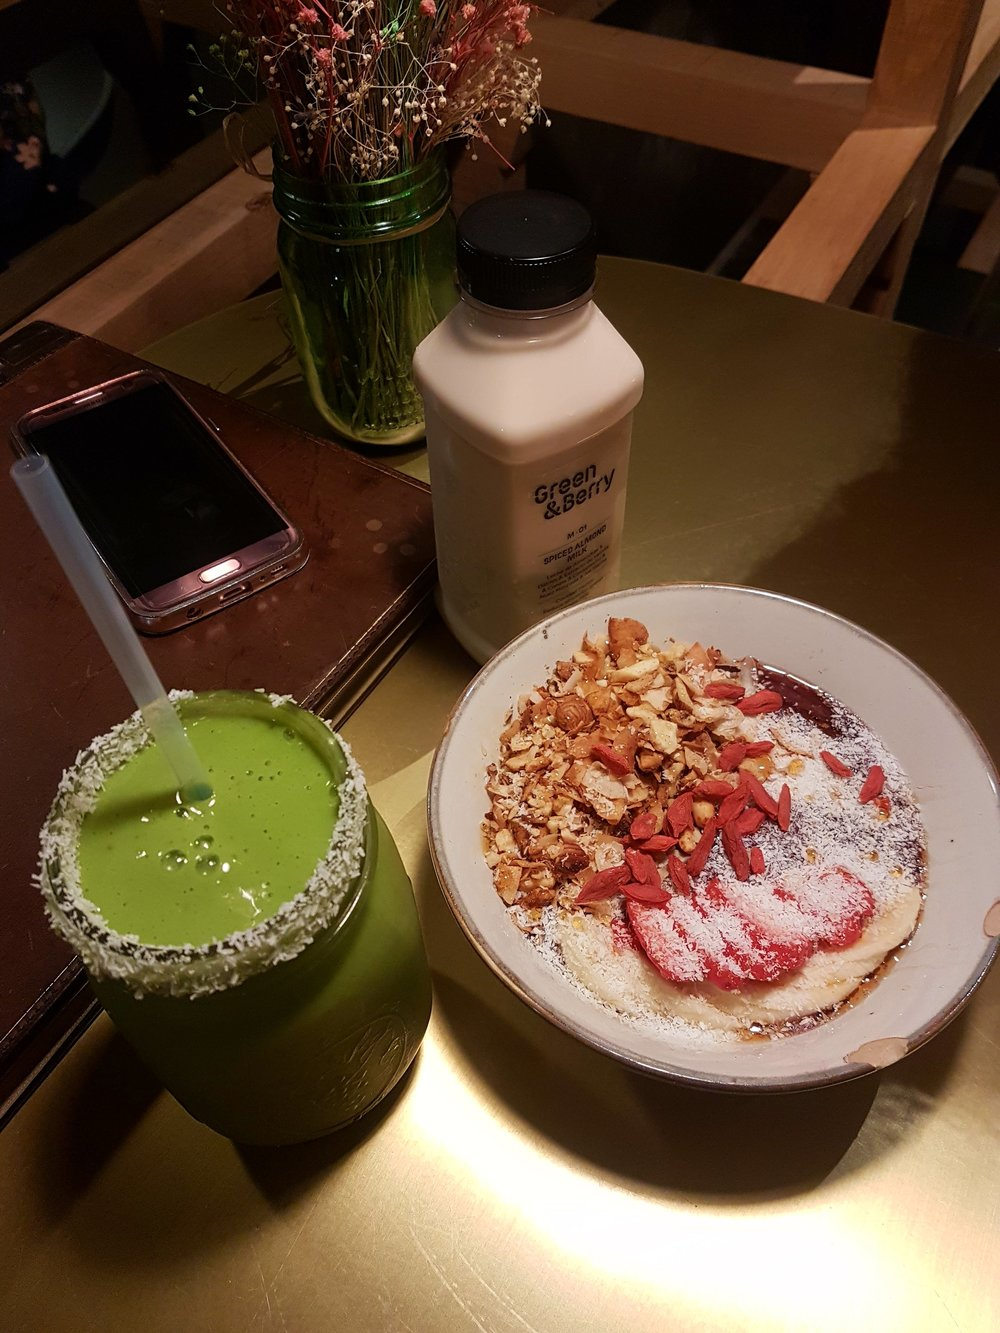 Acai berry bowl, some green smoothie and spiced almond milk